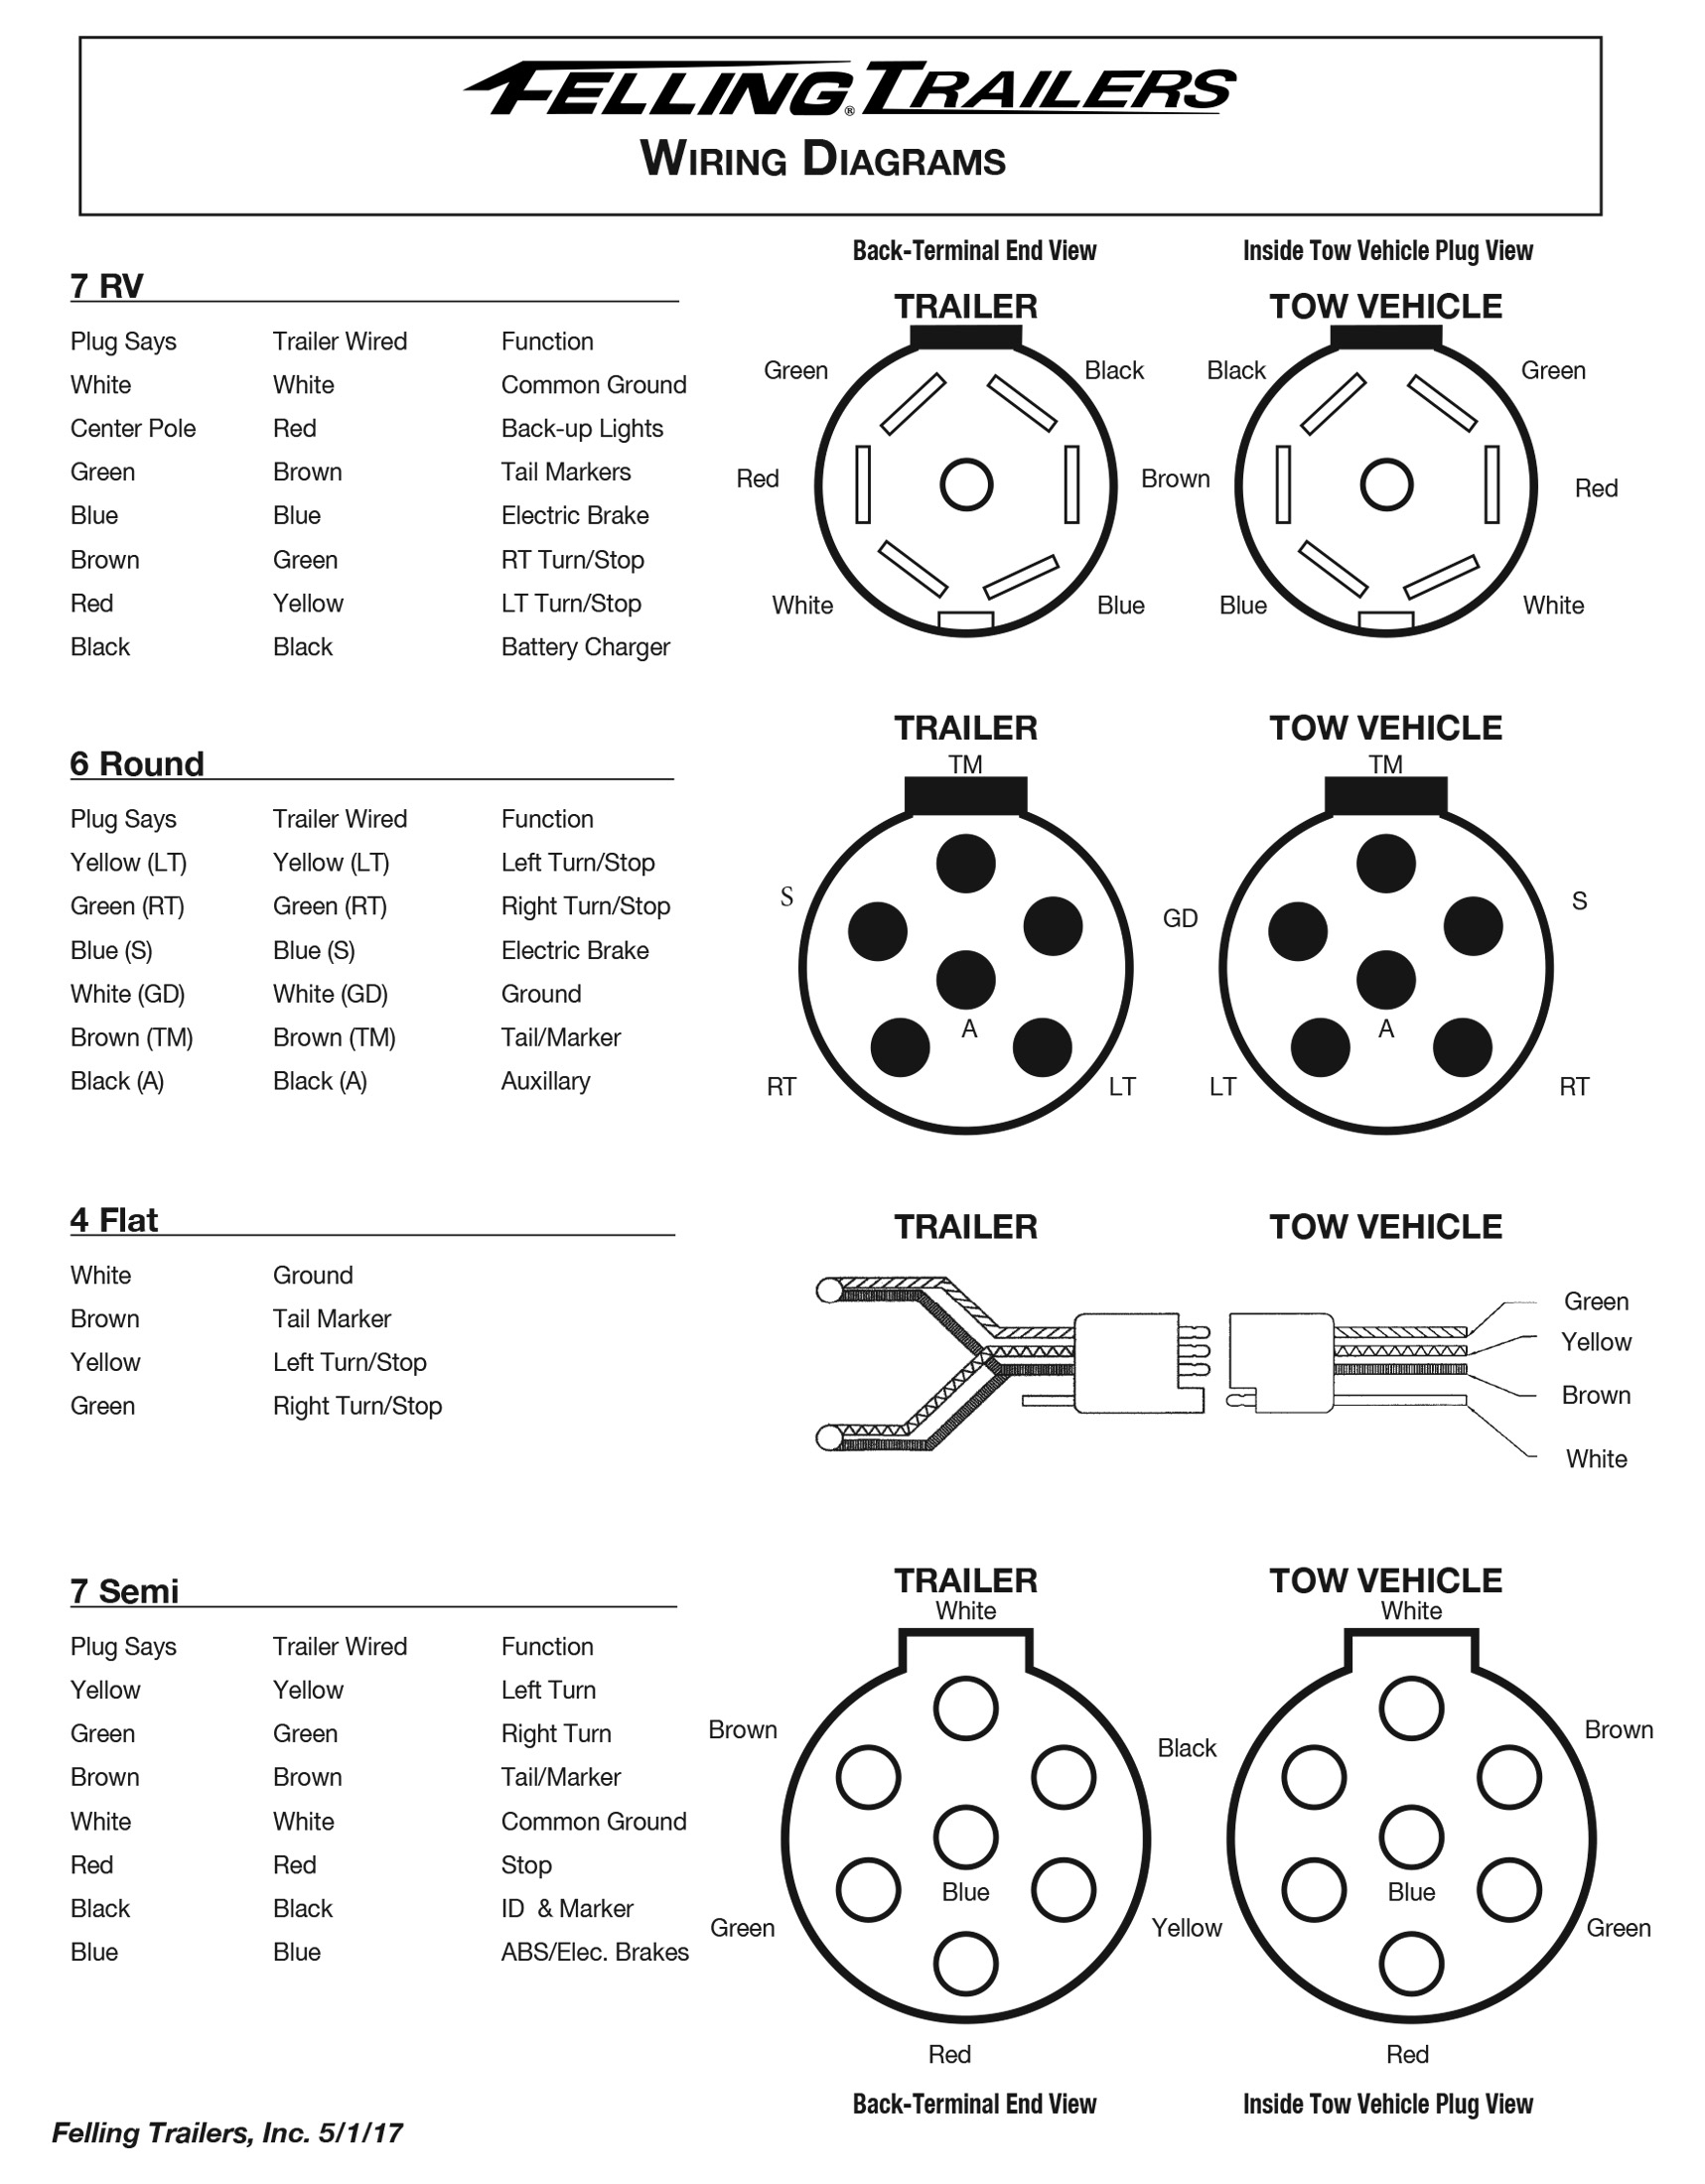 Service- Felling Trailers Wiring Diagrams, Wheel Toque - 4 Plug Wiring Diagram Trailer